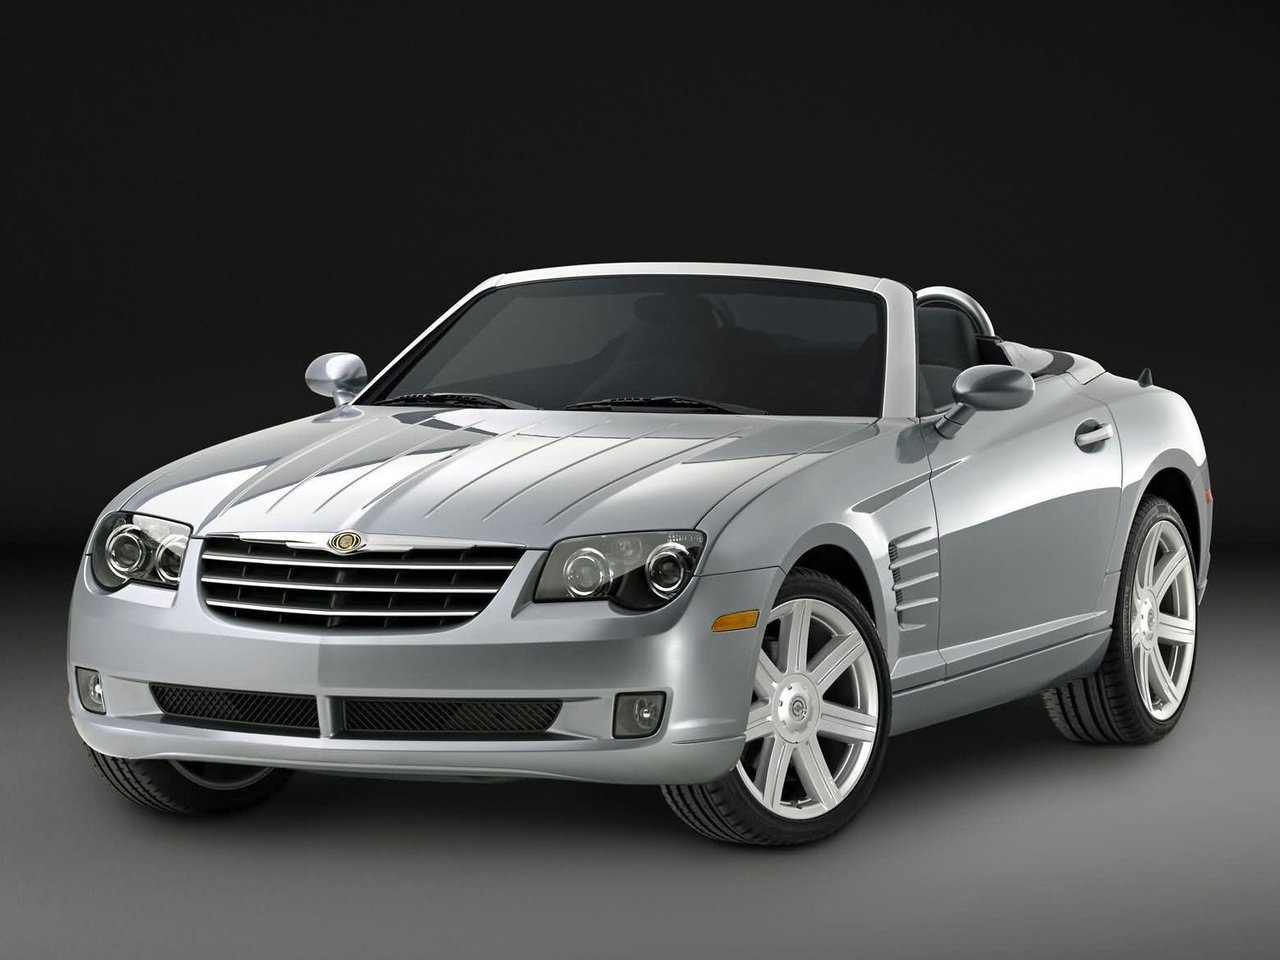 Автомобиль Chrysler Crossfire